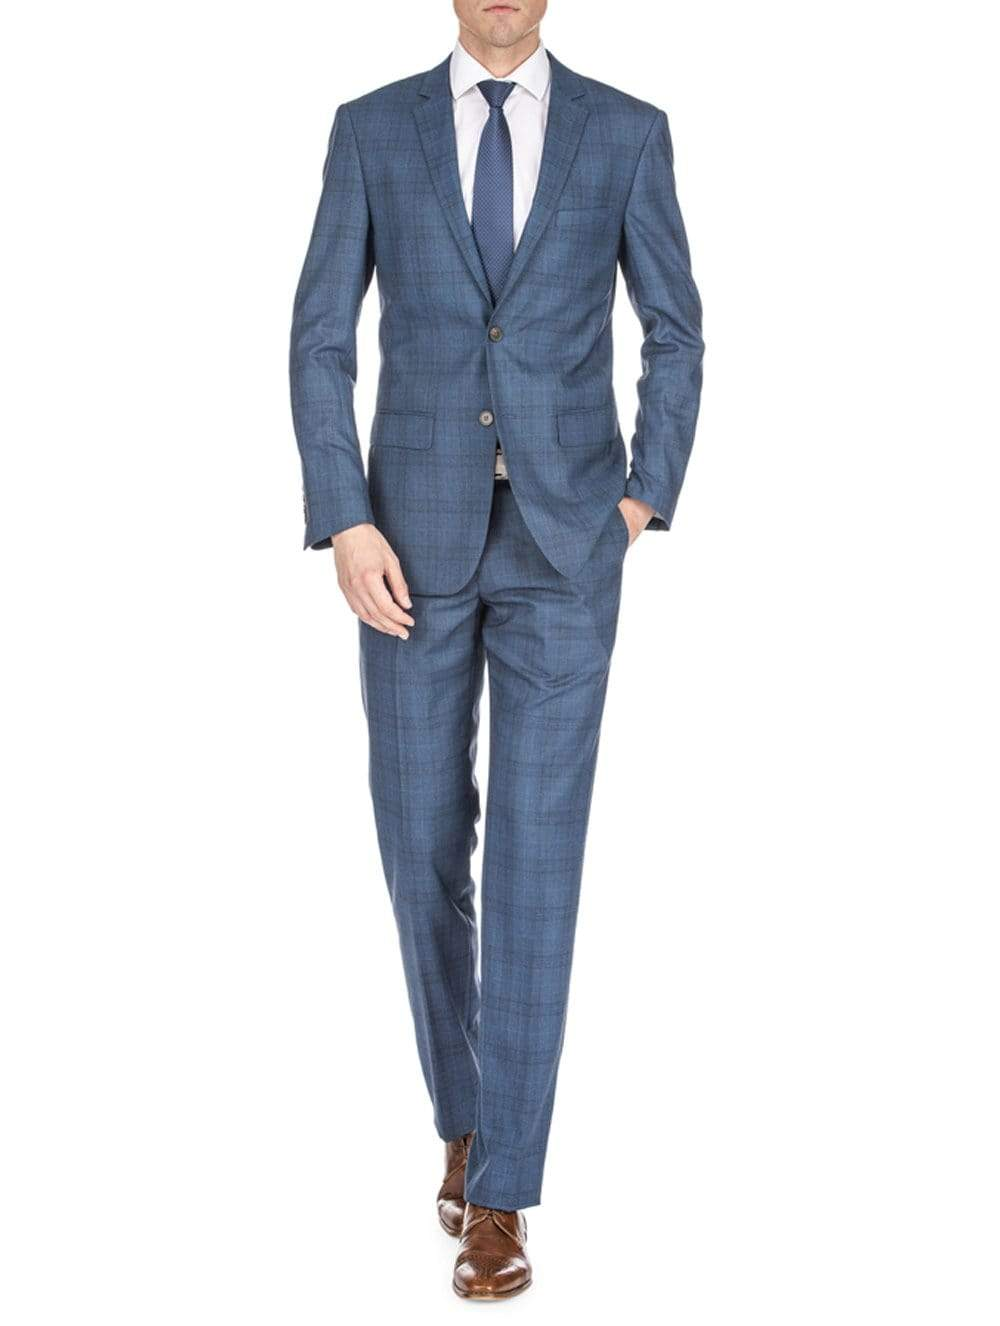 DAILY HAUTE Men's Suits INK BLUE / 36Rx30W Gino Vitale Men's Harrogate Windowpane Slim Fit 2PC Suits